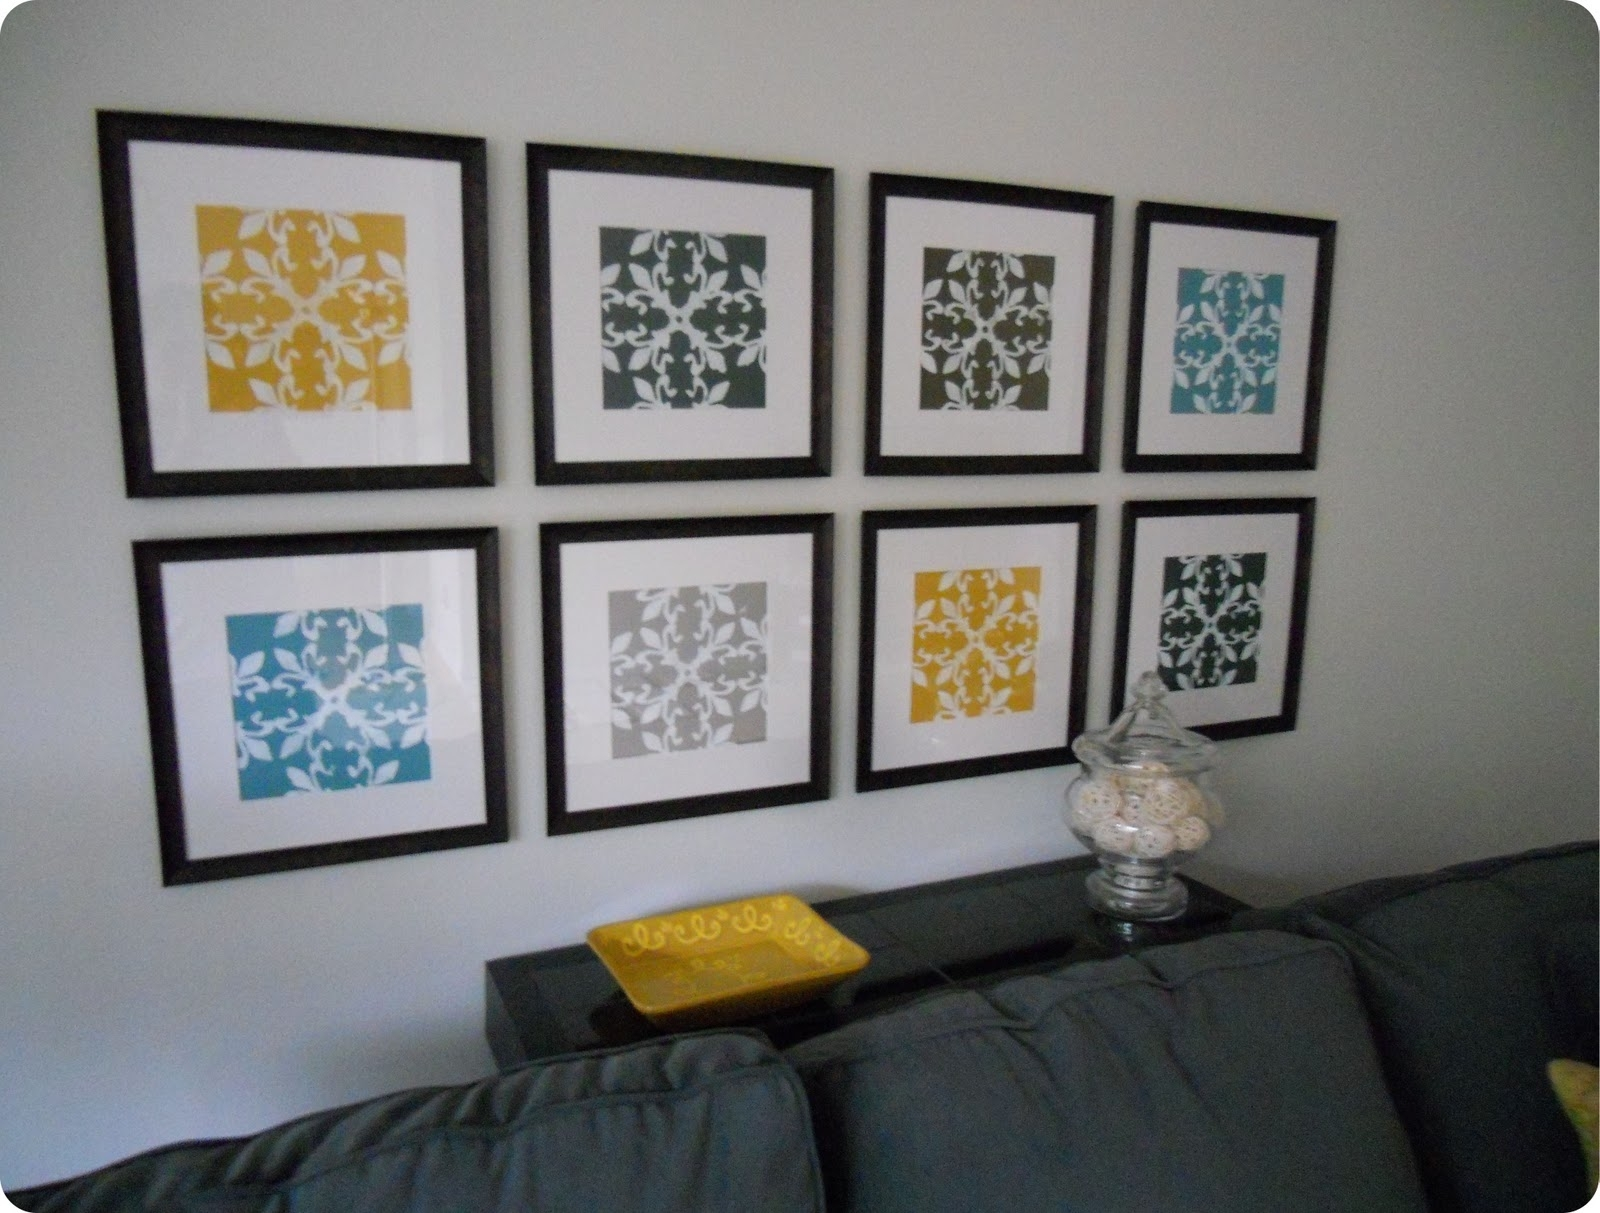 Gallery Wall Made From Inexpensive Frames, Scrapbook Paper For Most Recently Released Inexpensive Fabric Wall Art (View 7 of 15)